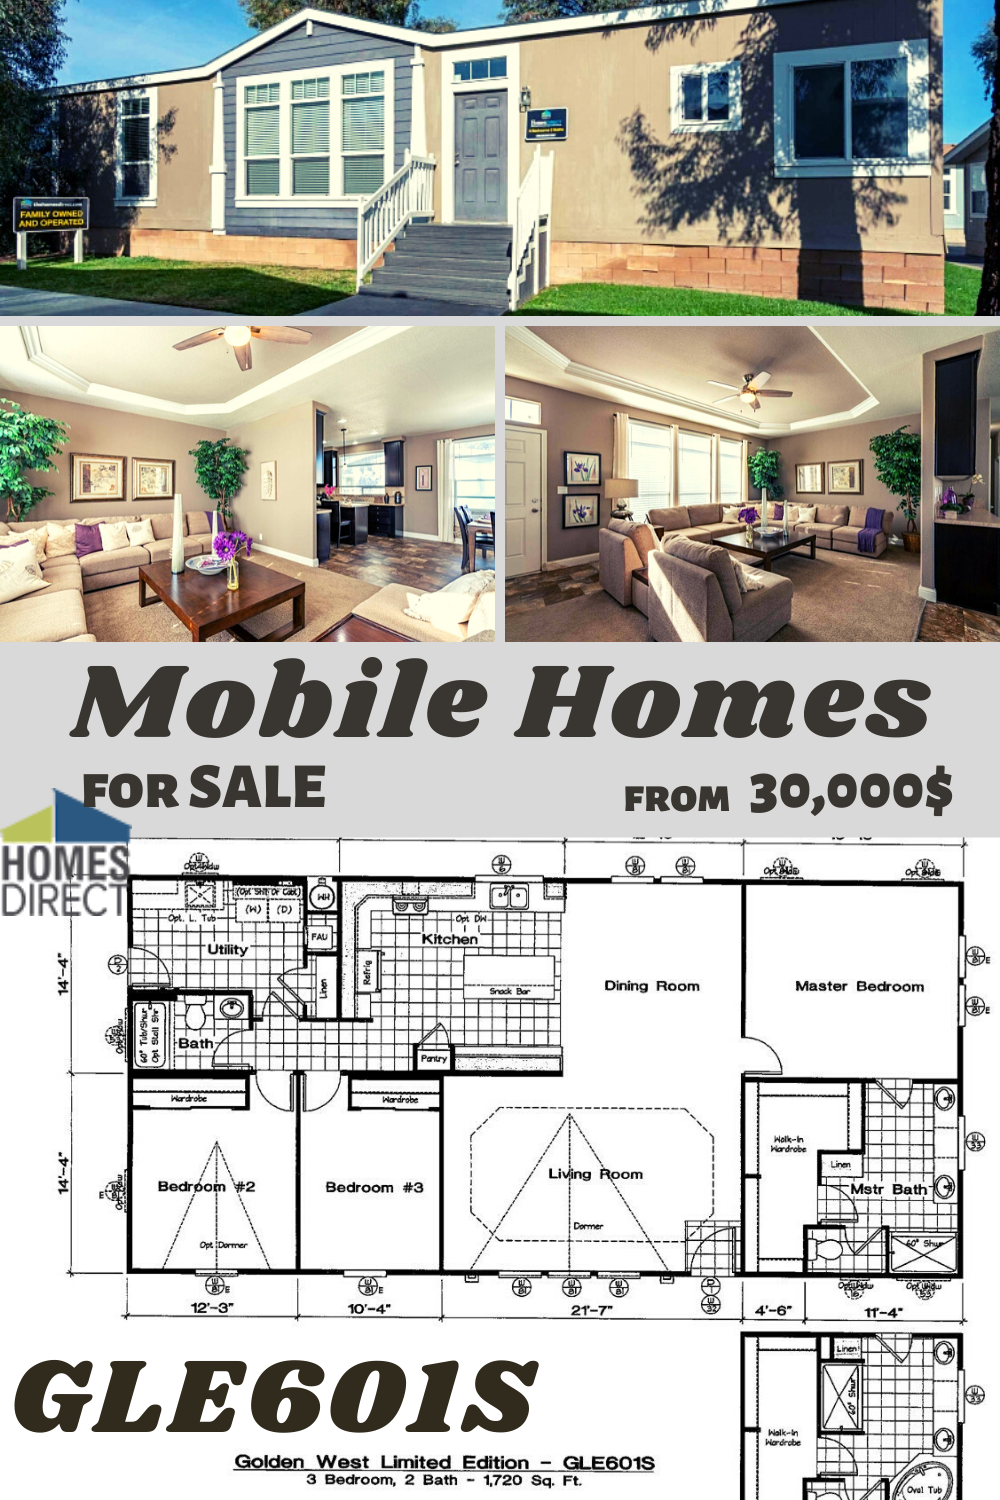 Gle601s In 2020 Home Mobile Homes For Sale Modular Homes